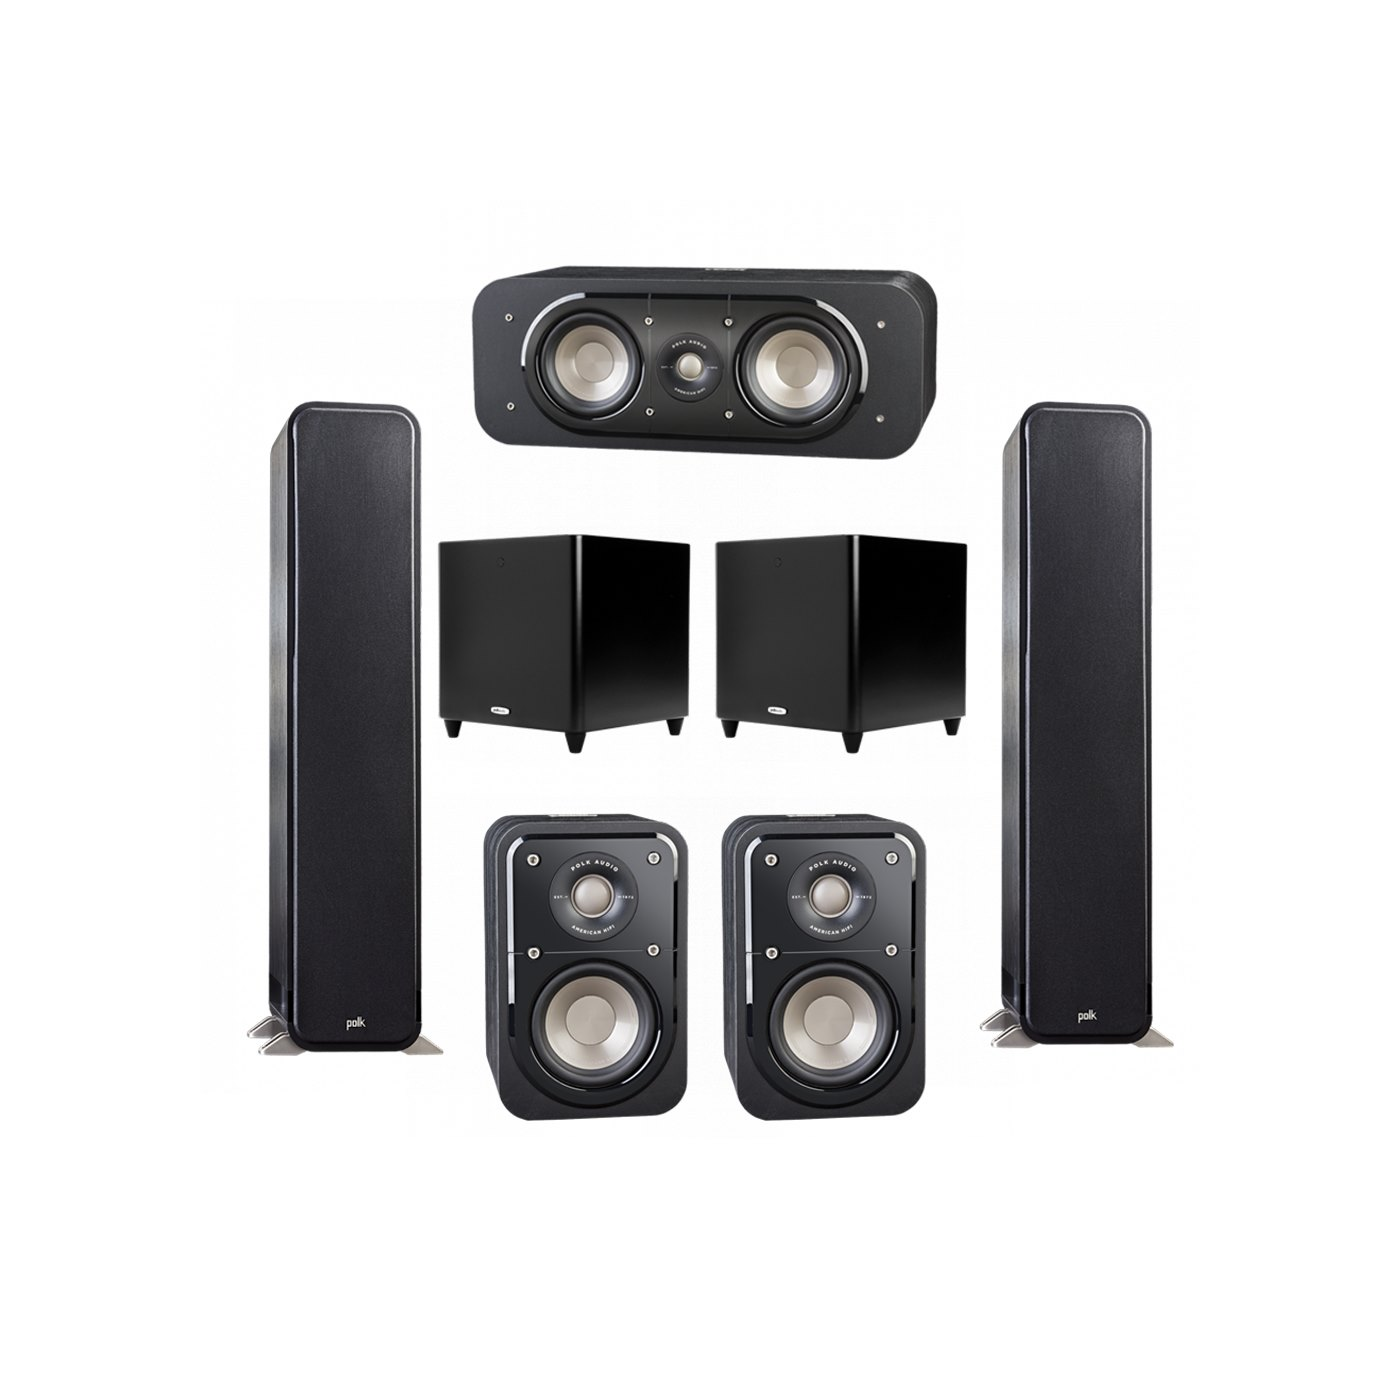 Polk Audio Signature 5.2 System with 2 S55 Tower Speaker, 1 Polk S30 Center Speaker, 2 Polk S10 Surround Speaker, 2 Polk DSW PRO 660 wi Subwoofer